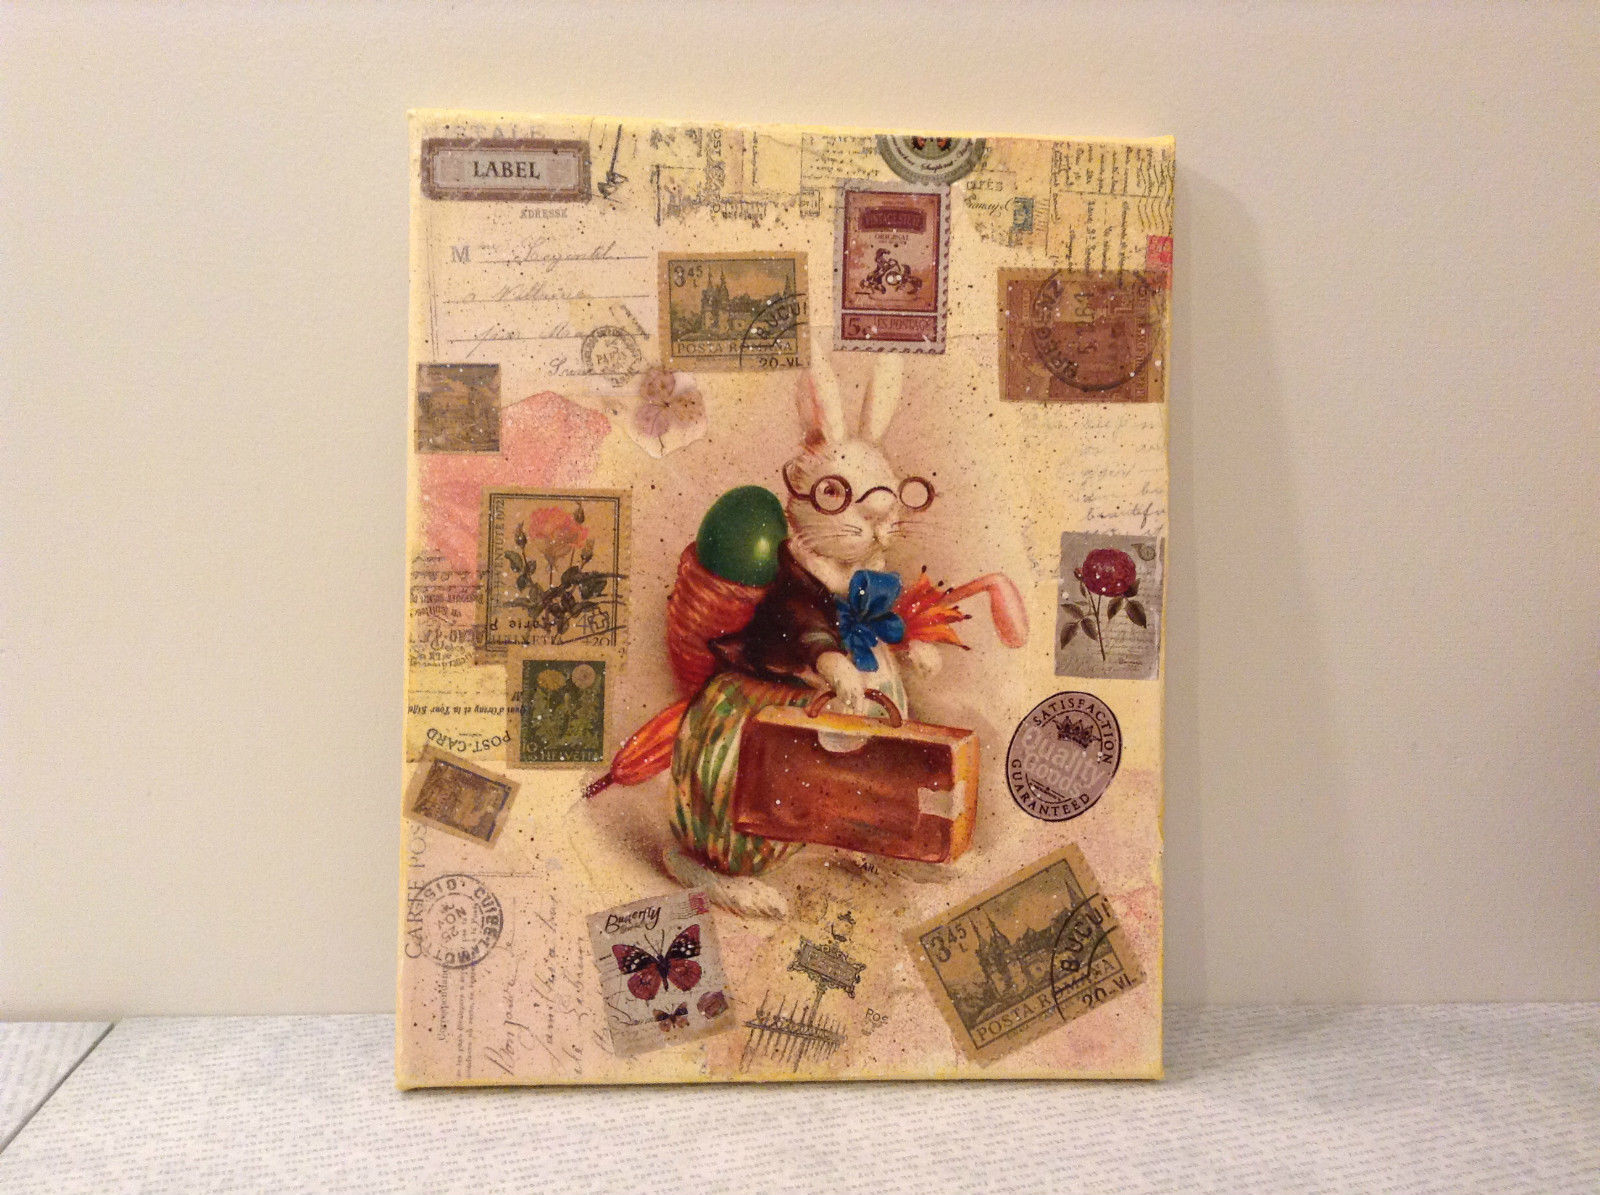 Traveling Bunny Vintage Decorative Canvas Russian Artist Handmade L Mironova